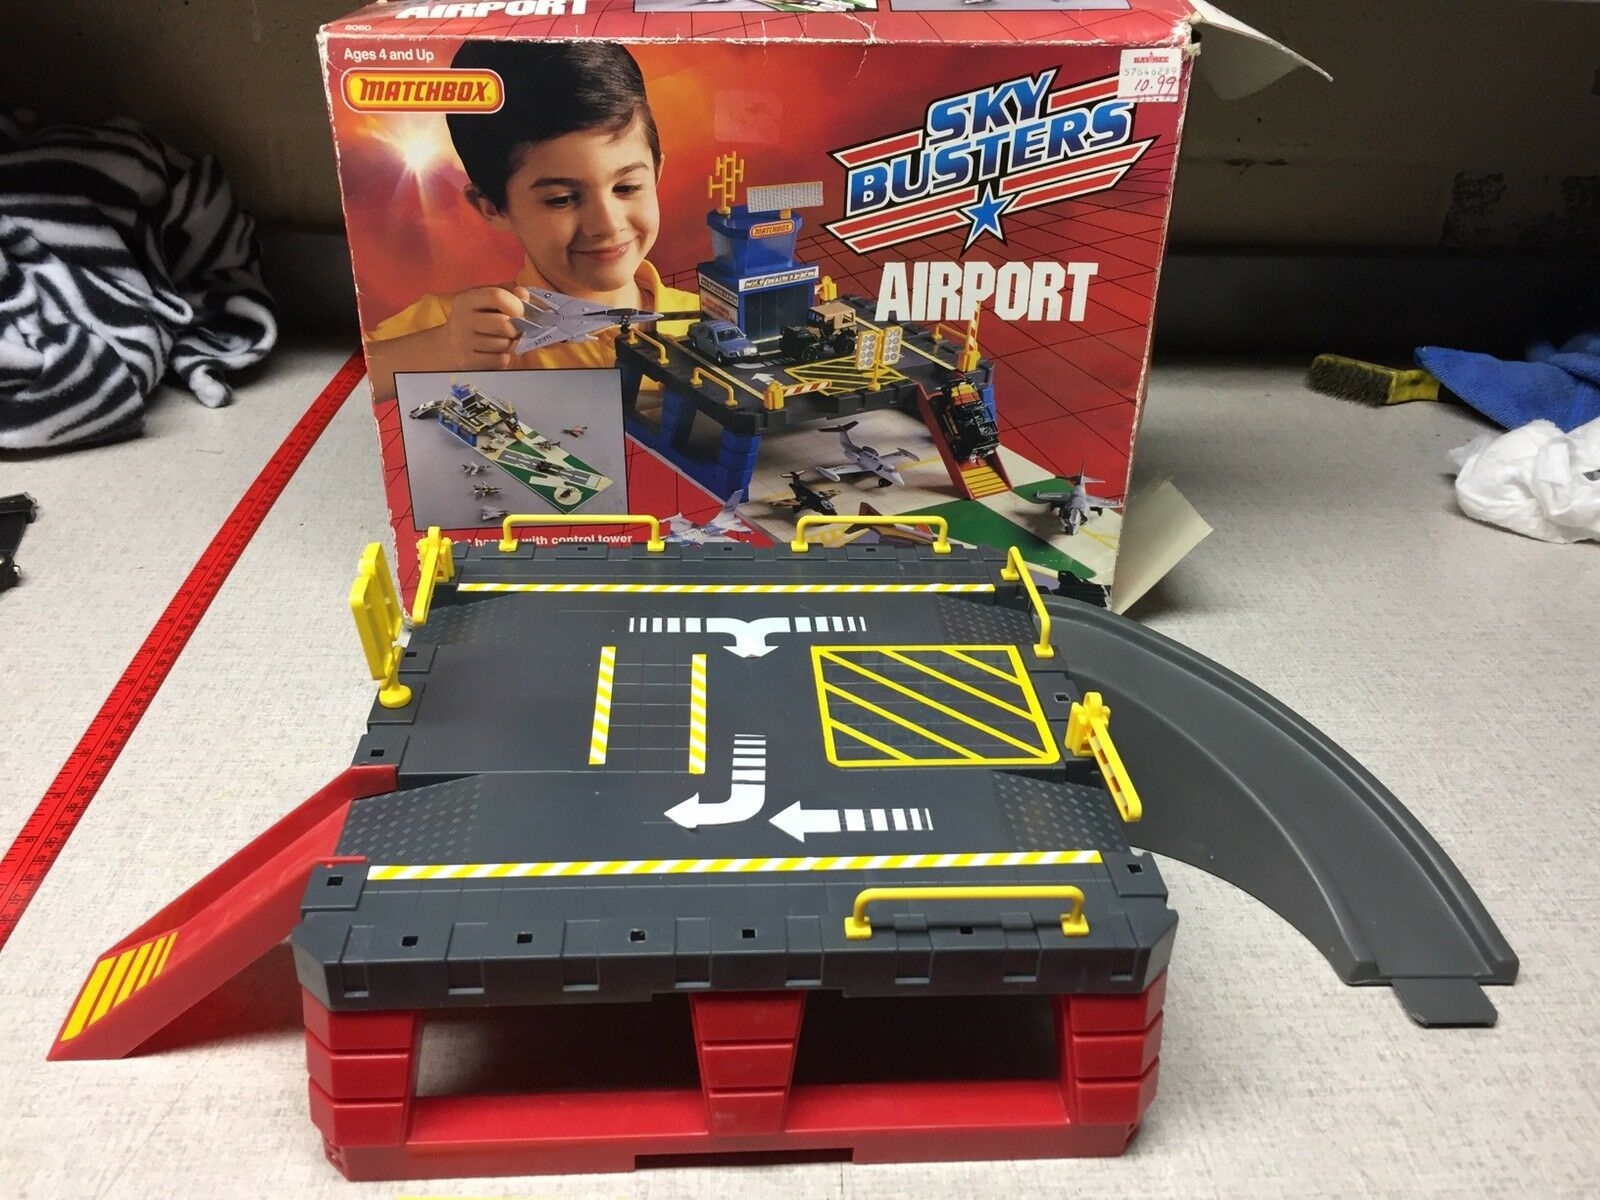 RARE VINTAGE 1989 MATCHBOX SKY BUSTERS AIRPORT PLAY SET AIRCRAFT AIRPLANE IN BOX